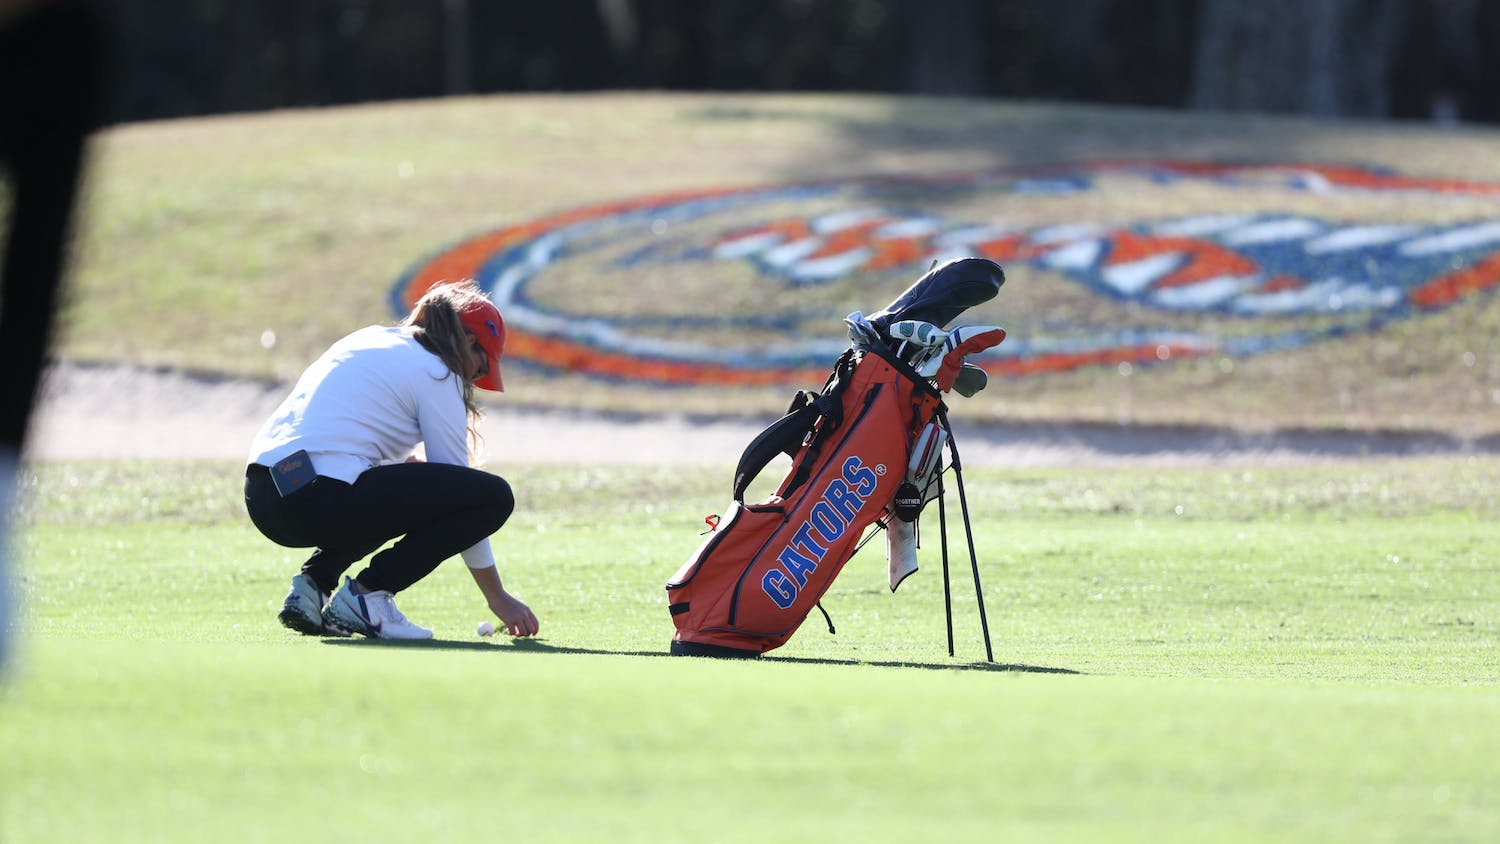 Addie Baggarly's now 3-under-par for the tournament and ties for 22nd. Photo courtesy of the UAA.